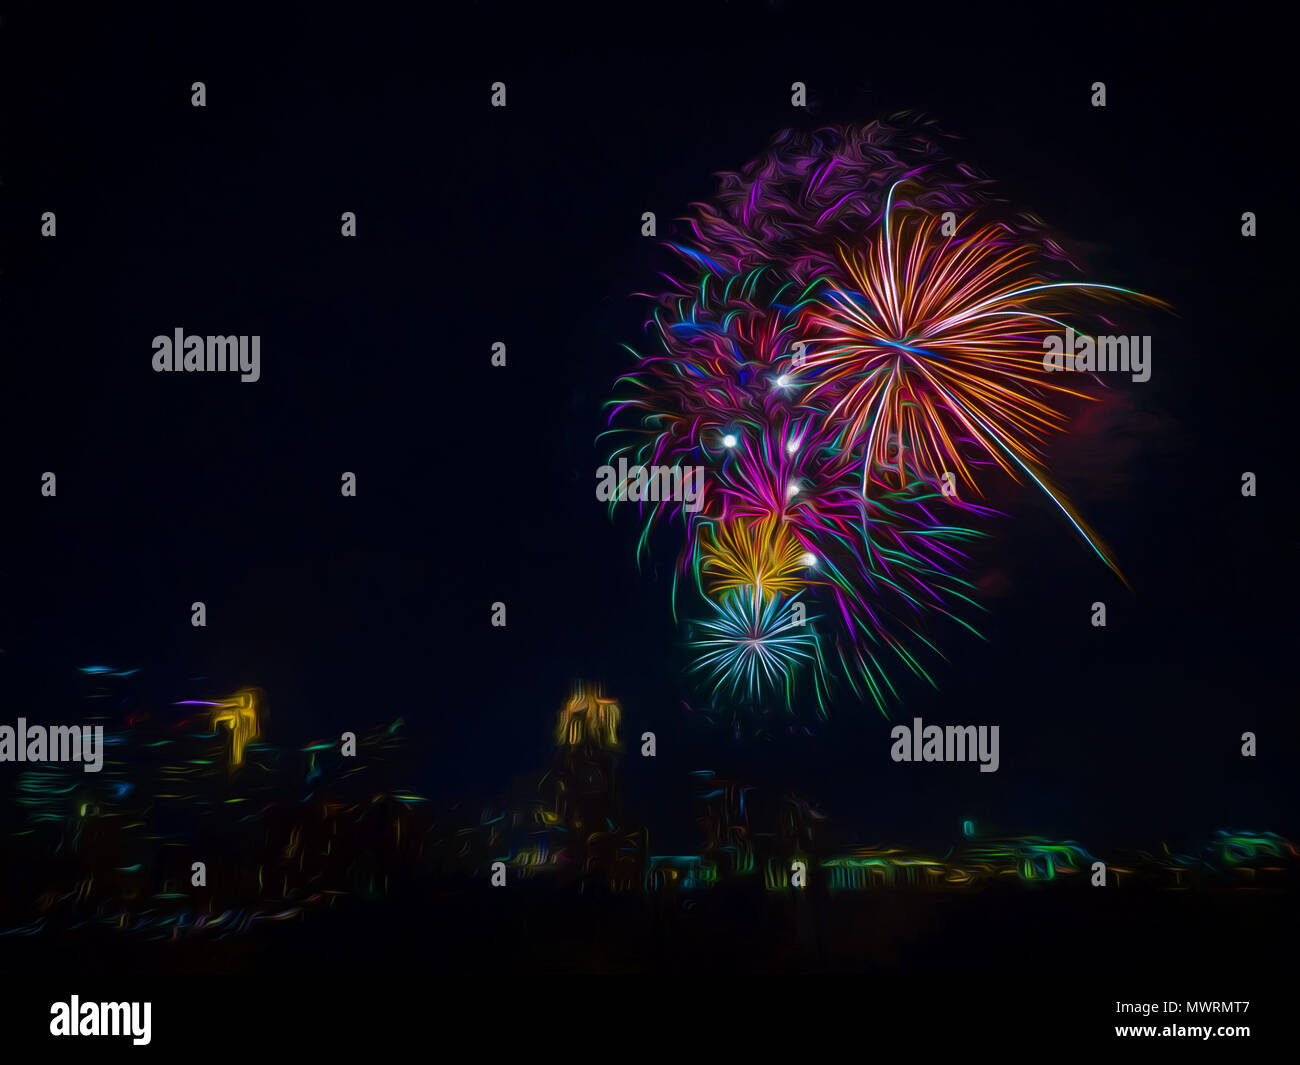 Rainbow Fireworks Celebration Colorful Abstract Image With: Altered Reality Stock Photos & Altered Reality Stock